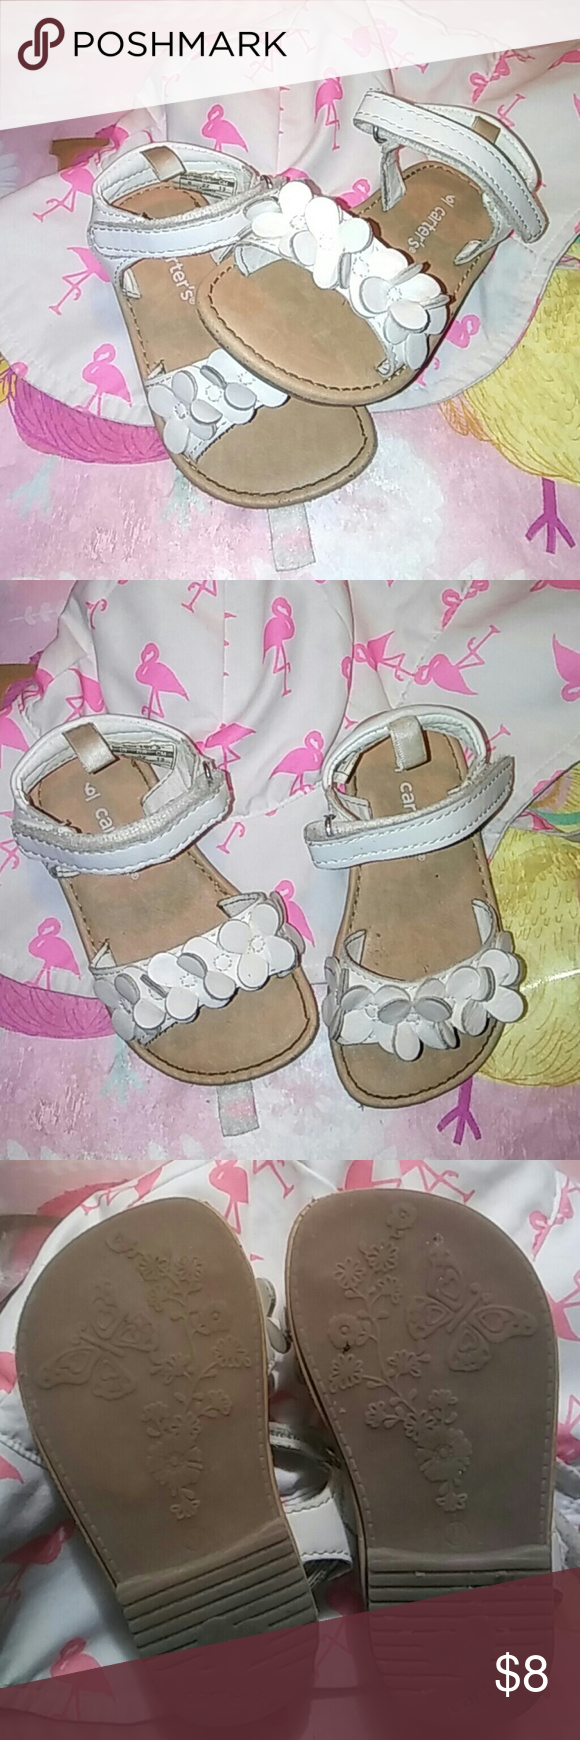 Selling this Carter's White Flower Design Strap Sandals on Poshmark! My username is: hellomynameismo. #shopmycloset #poshmark #fashion #shopping #style #forsale #Carter's #Other